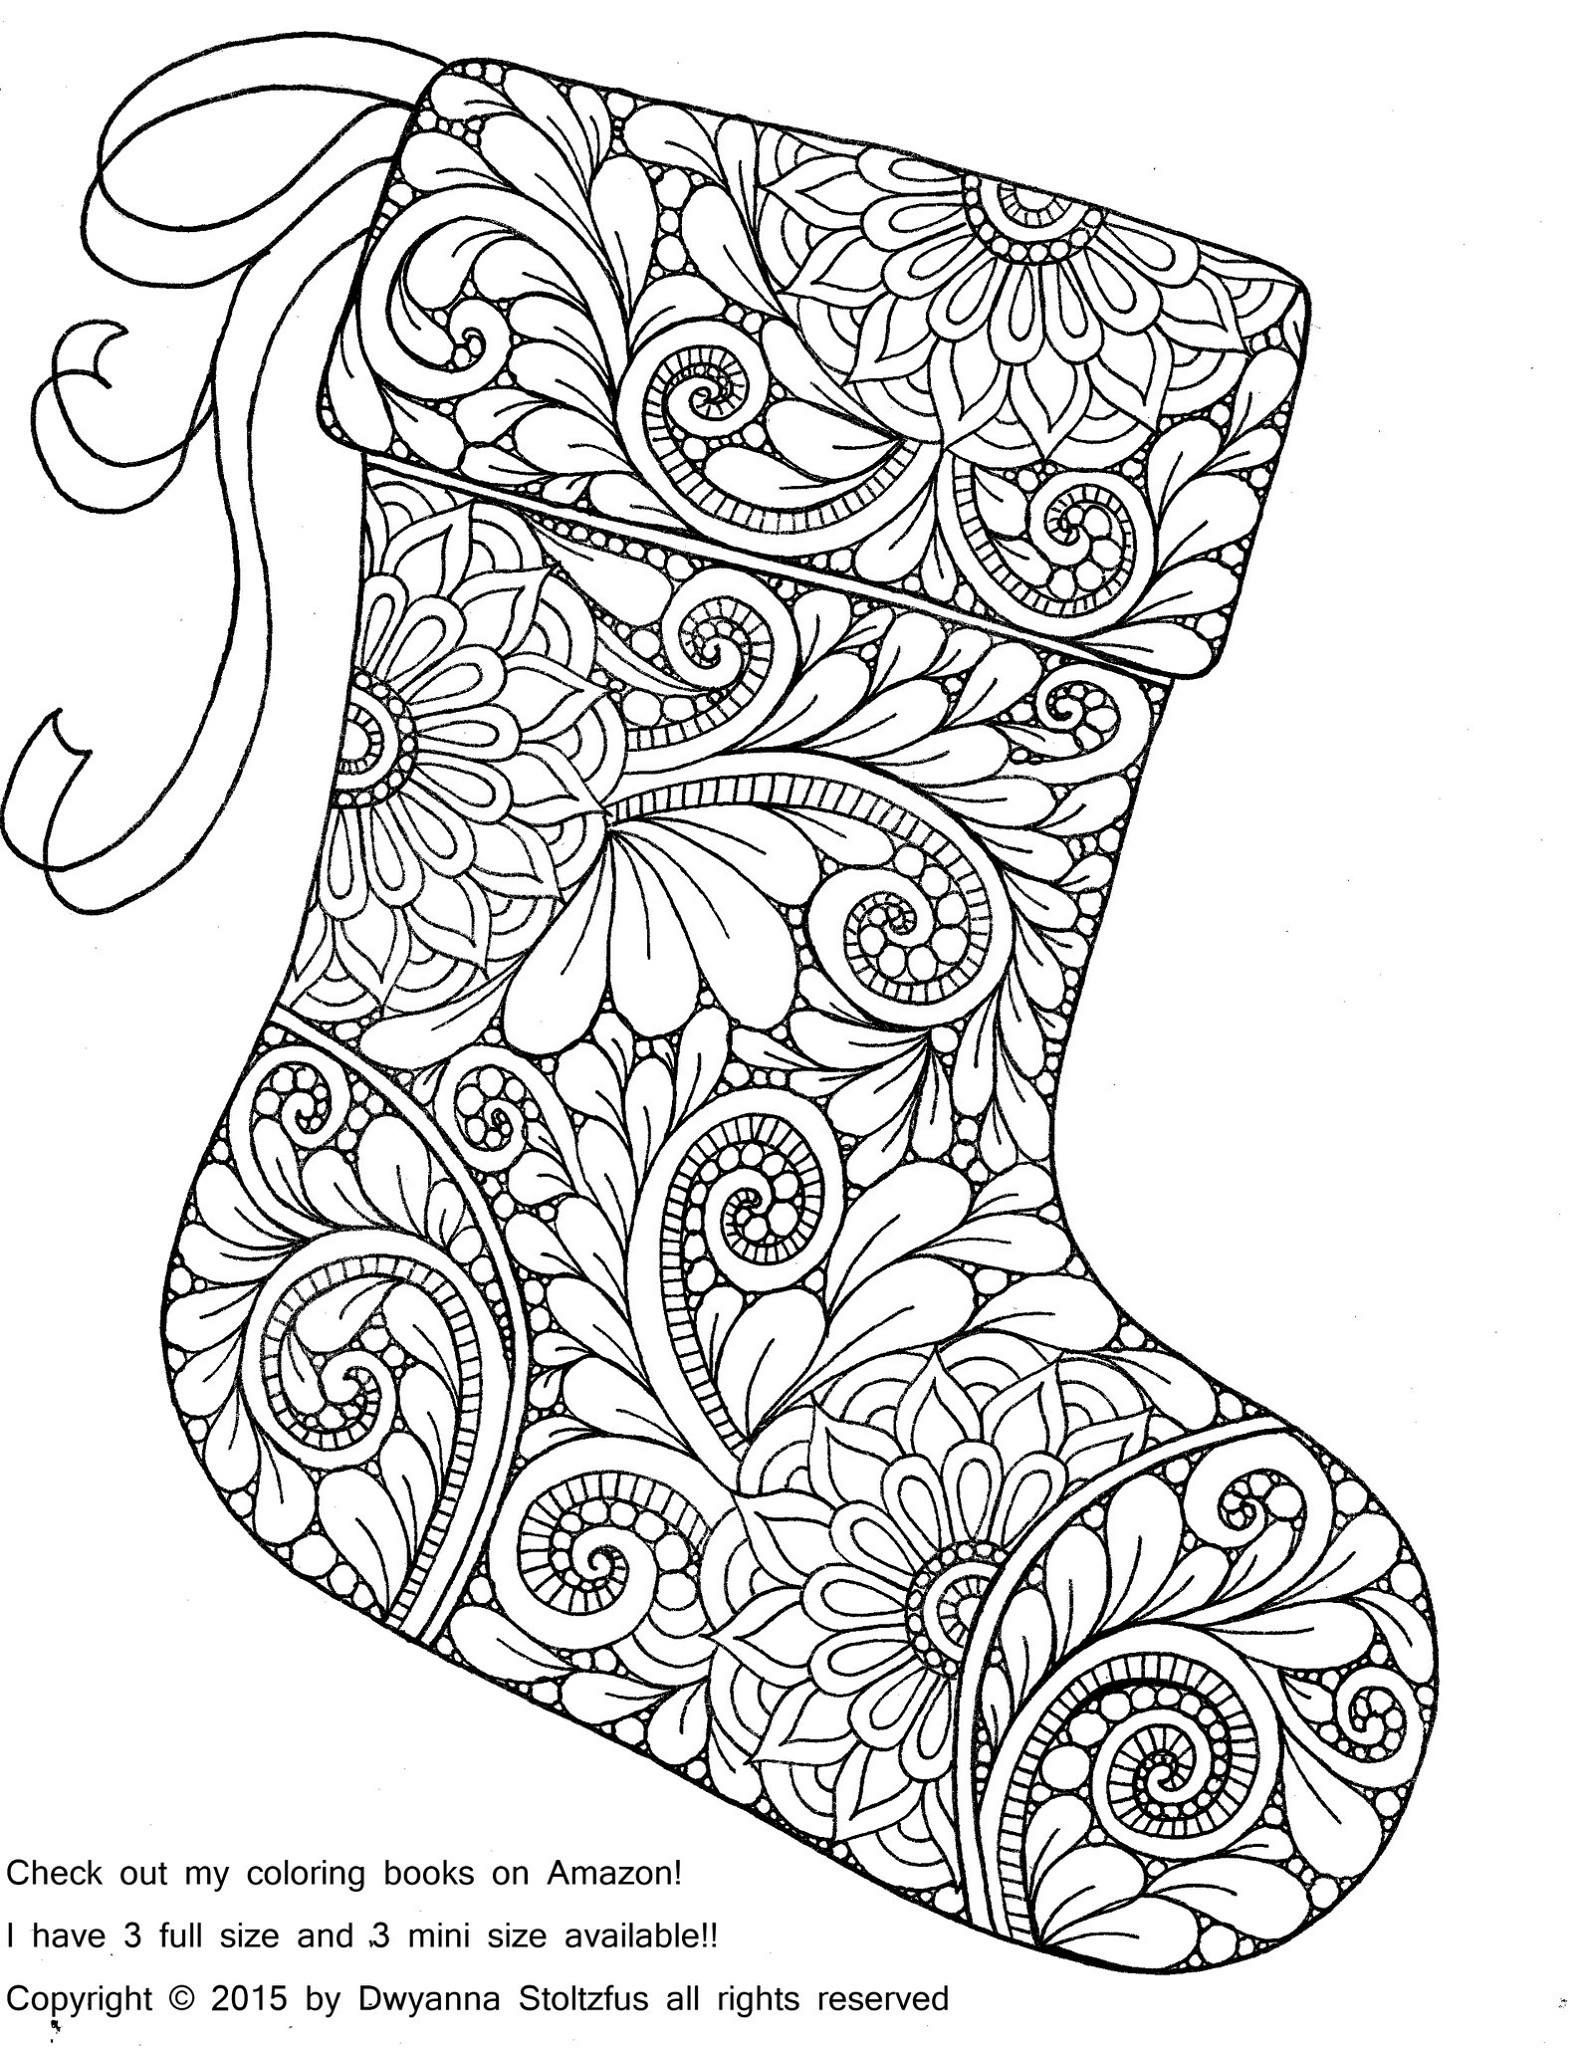 Christmas Stocking Coloring Page   School's Out For Summer